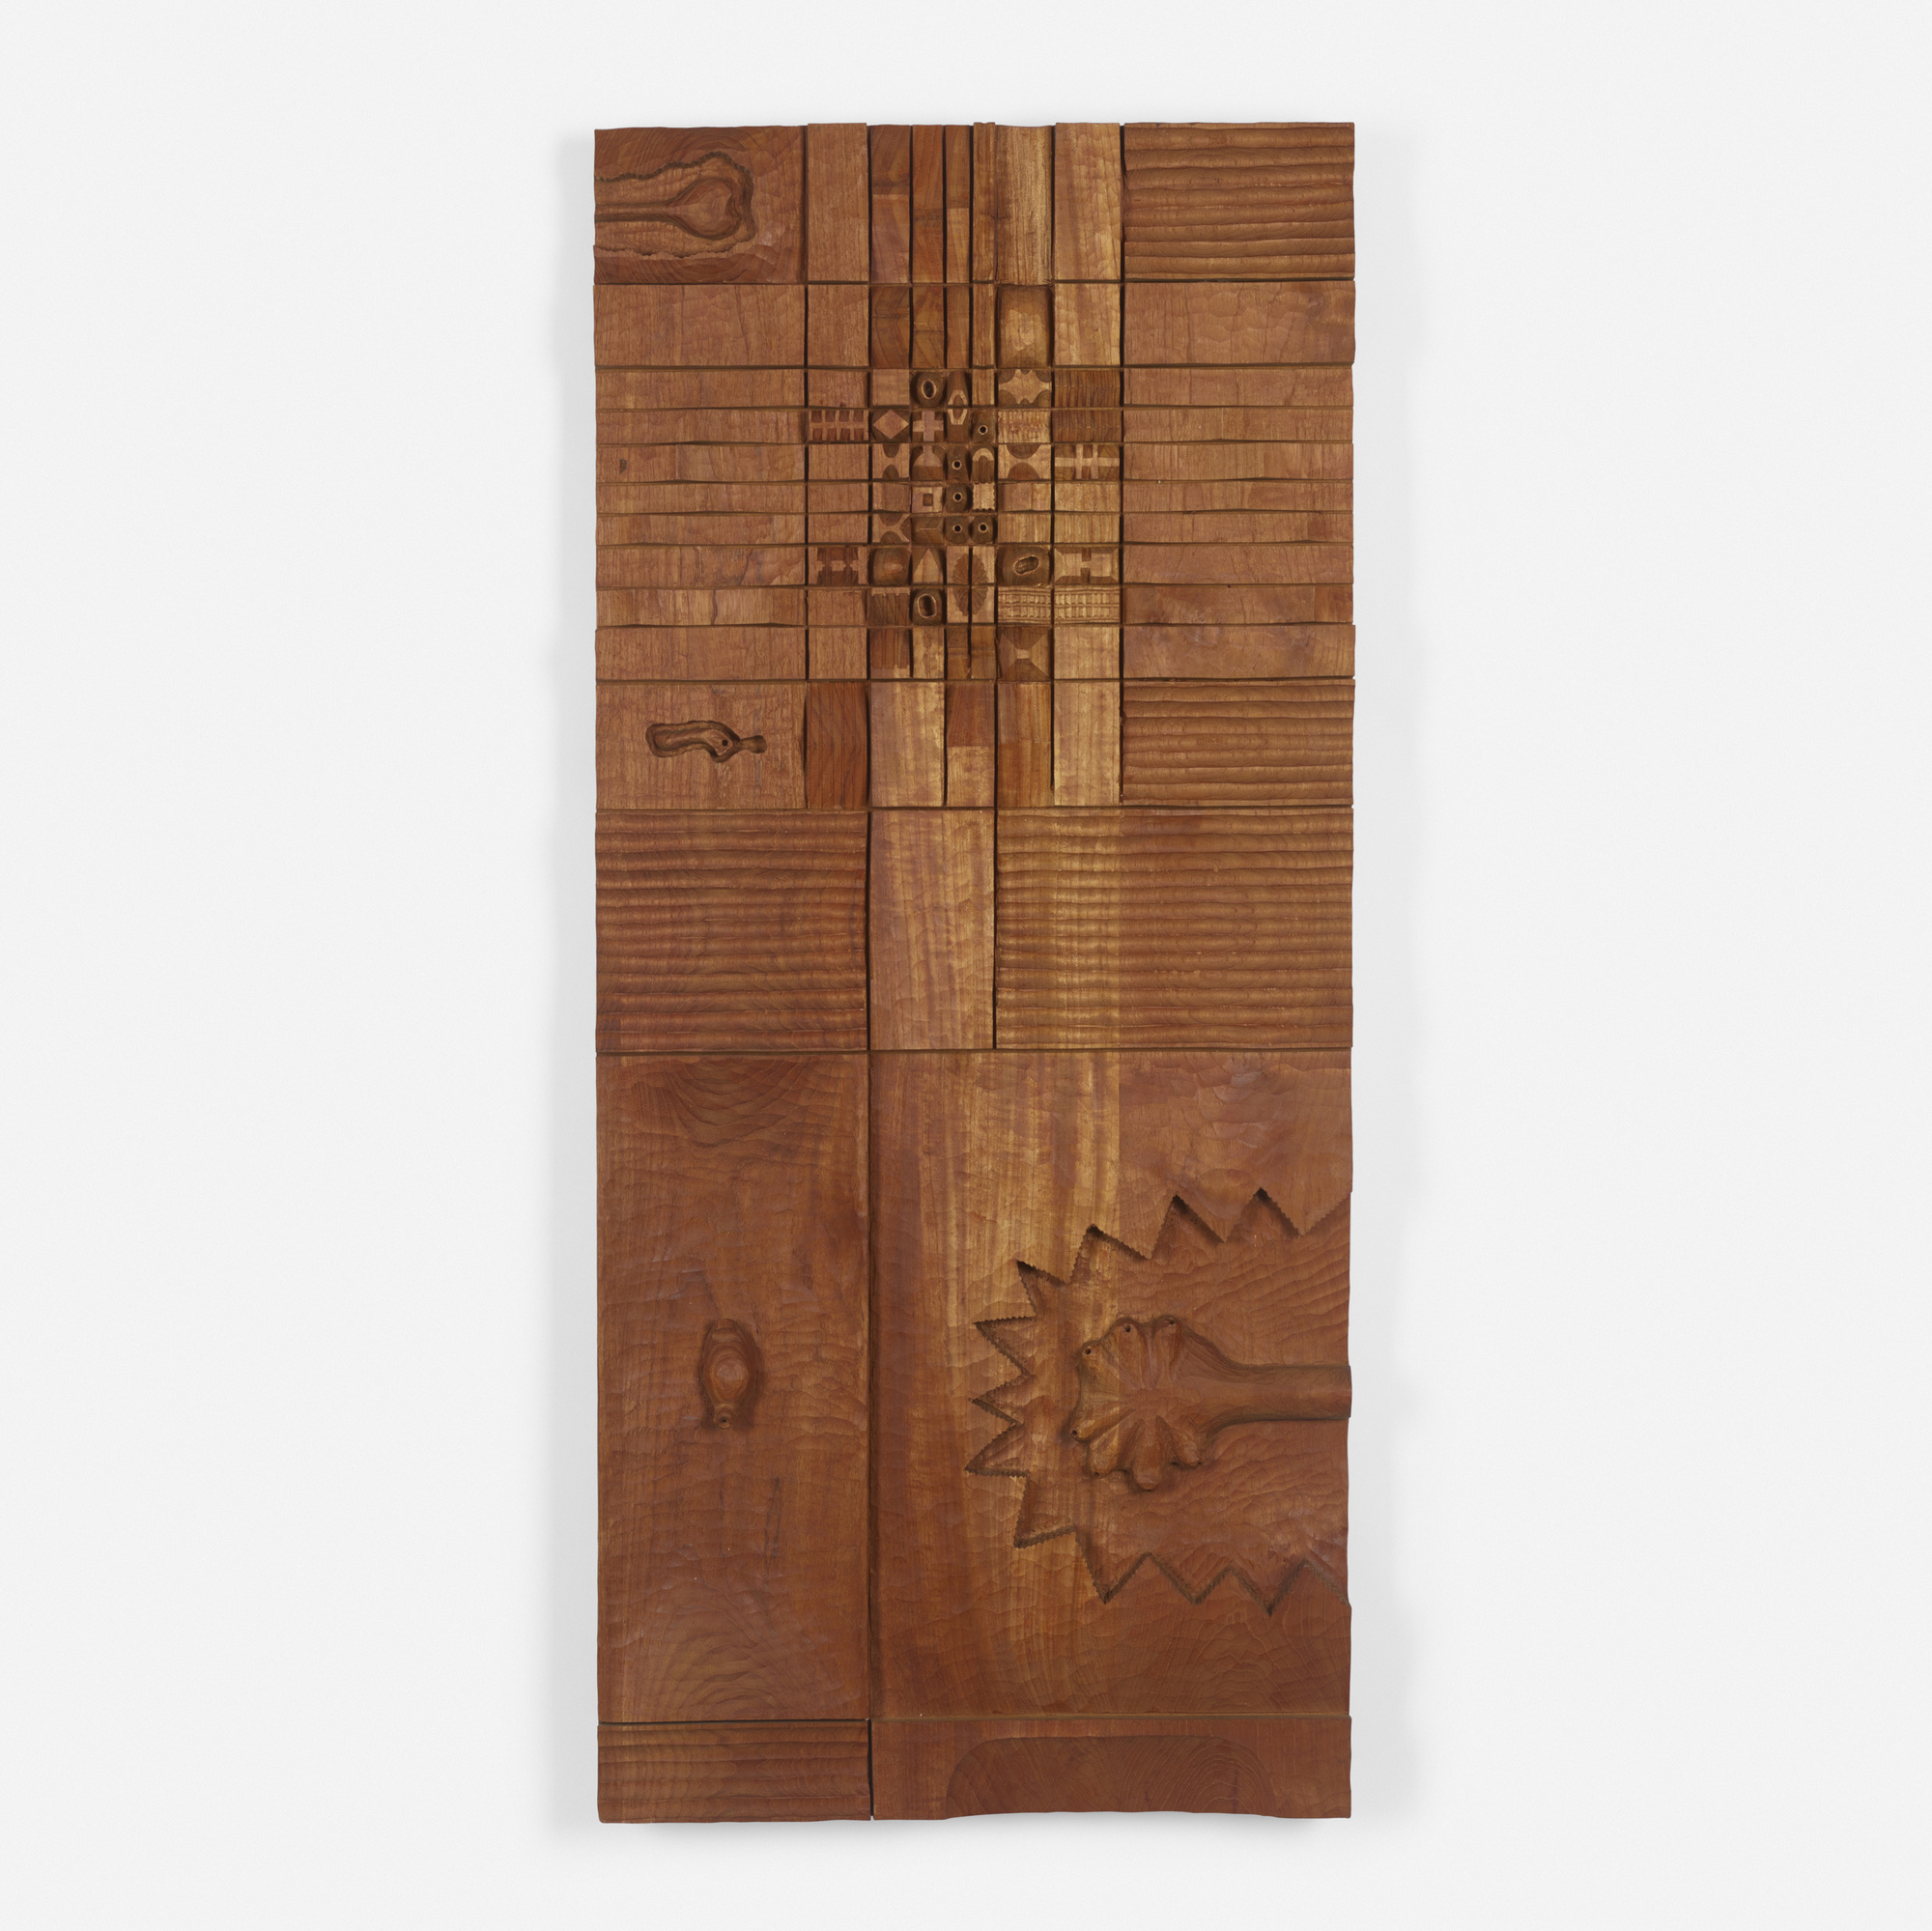 171: Leroy Setziol / Untitled (wood relief) (1 of 2)